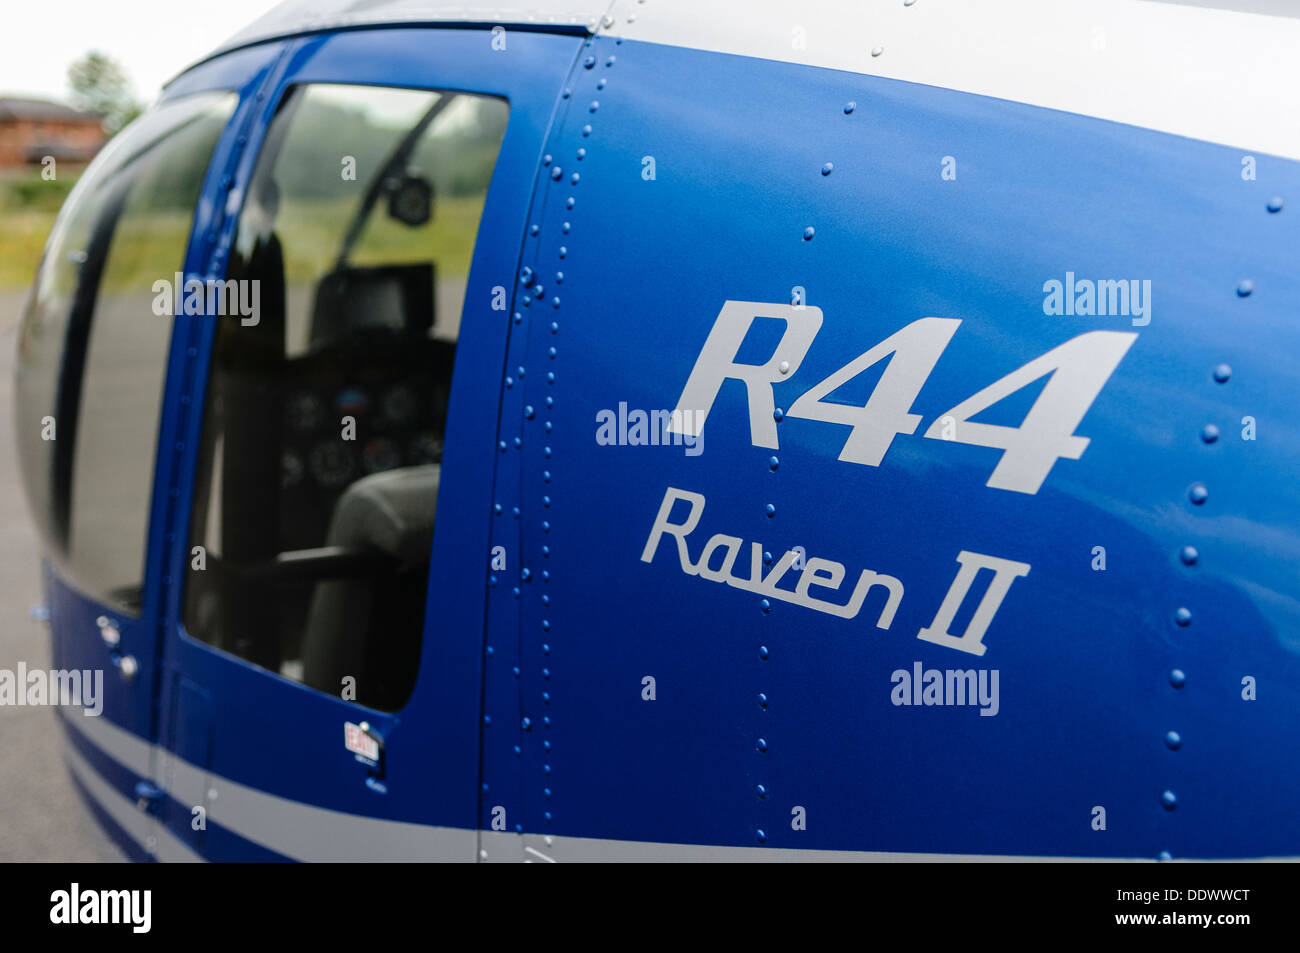 Logo on the side of a R33 Raven II helicopter - Stock Image